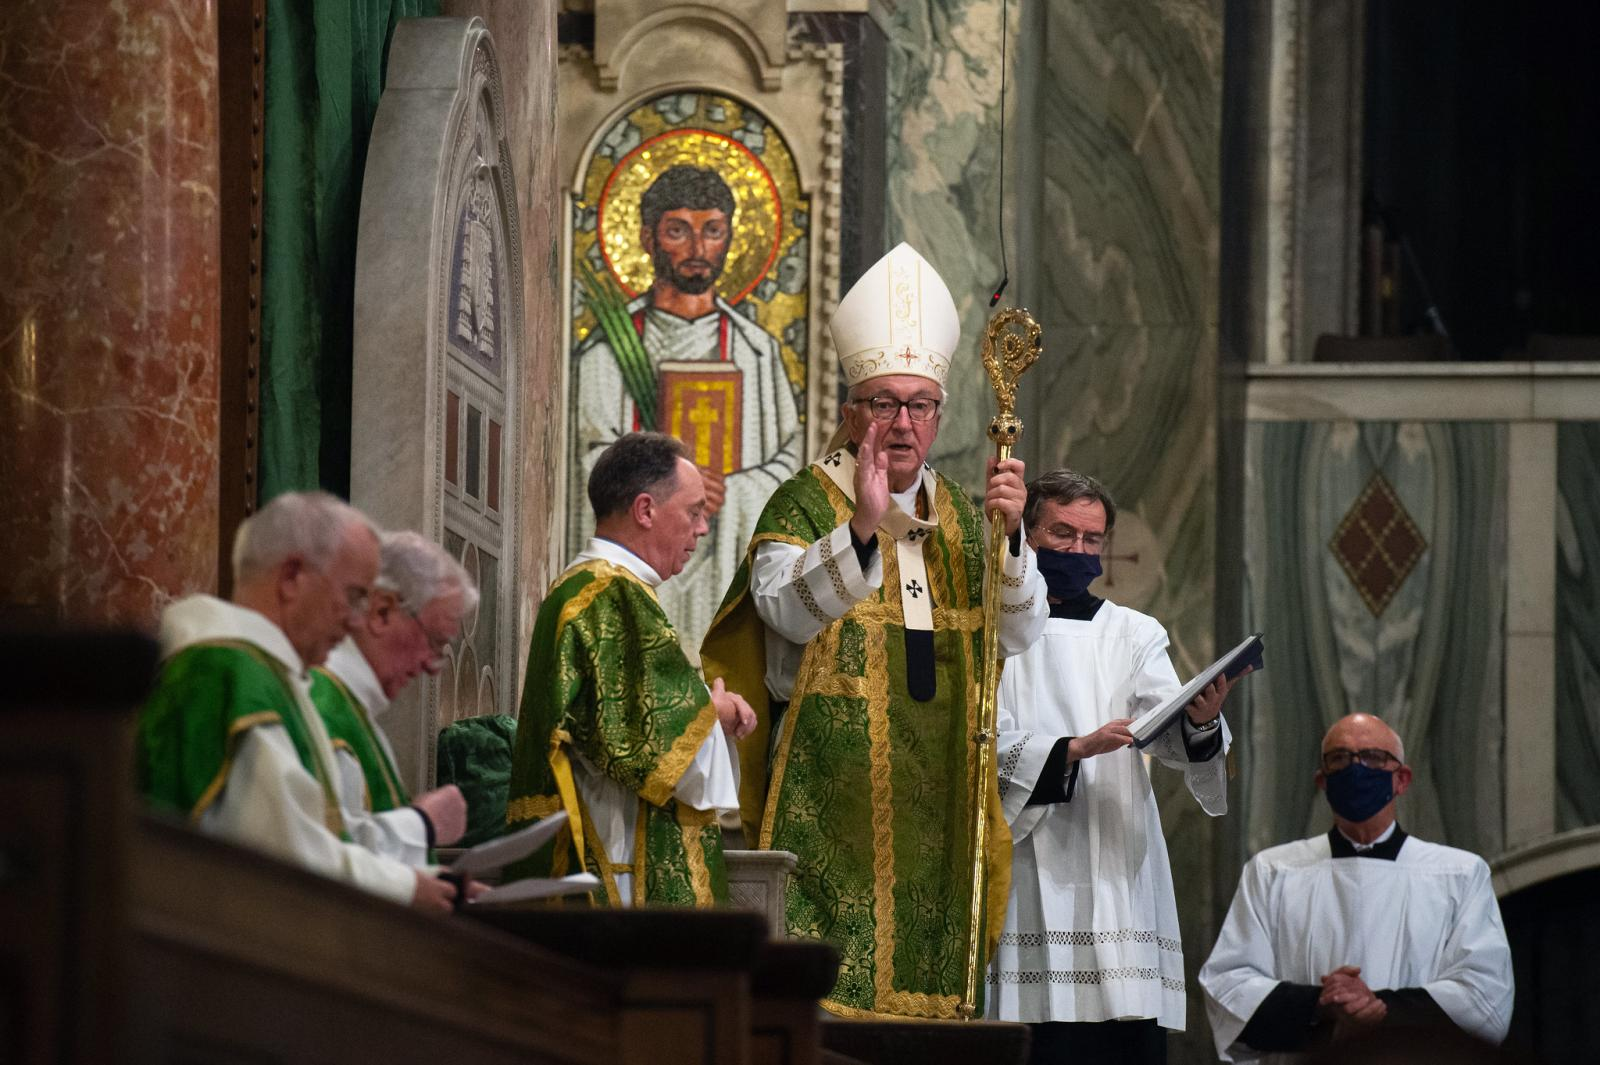 Cardinal's homily for the opening Mass for the diocesan phase of the synodal pathway